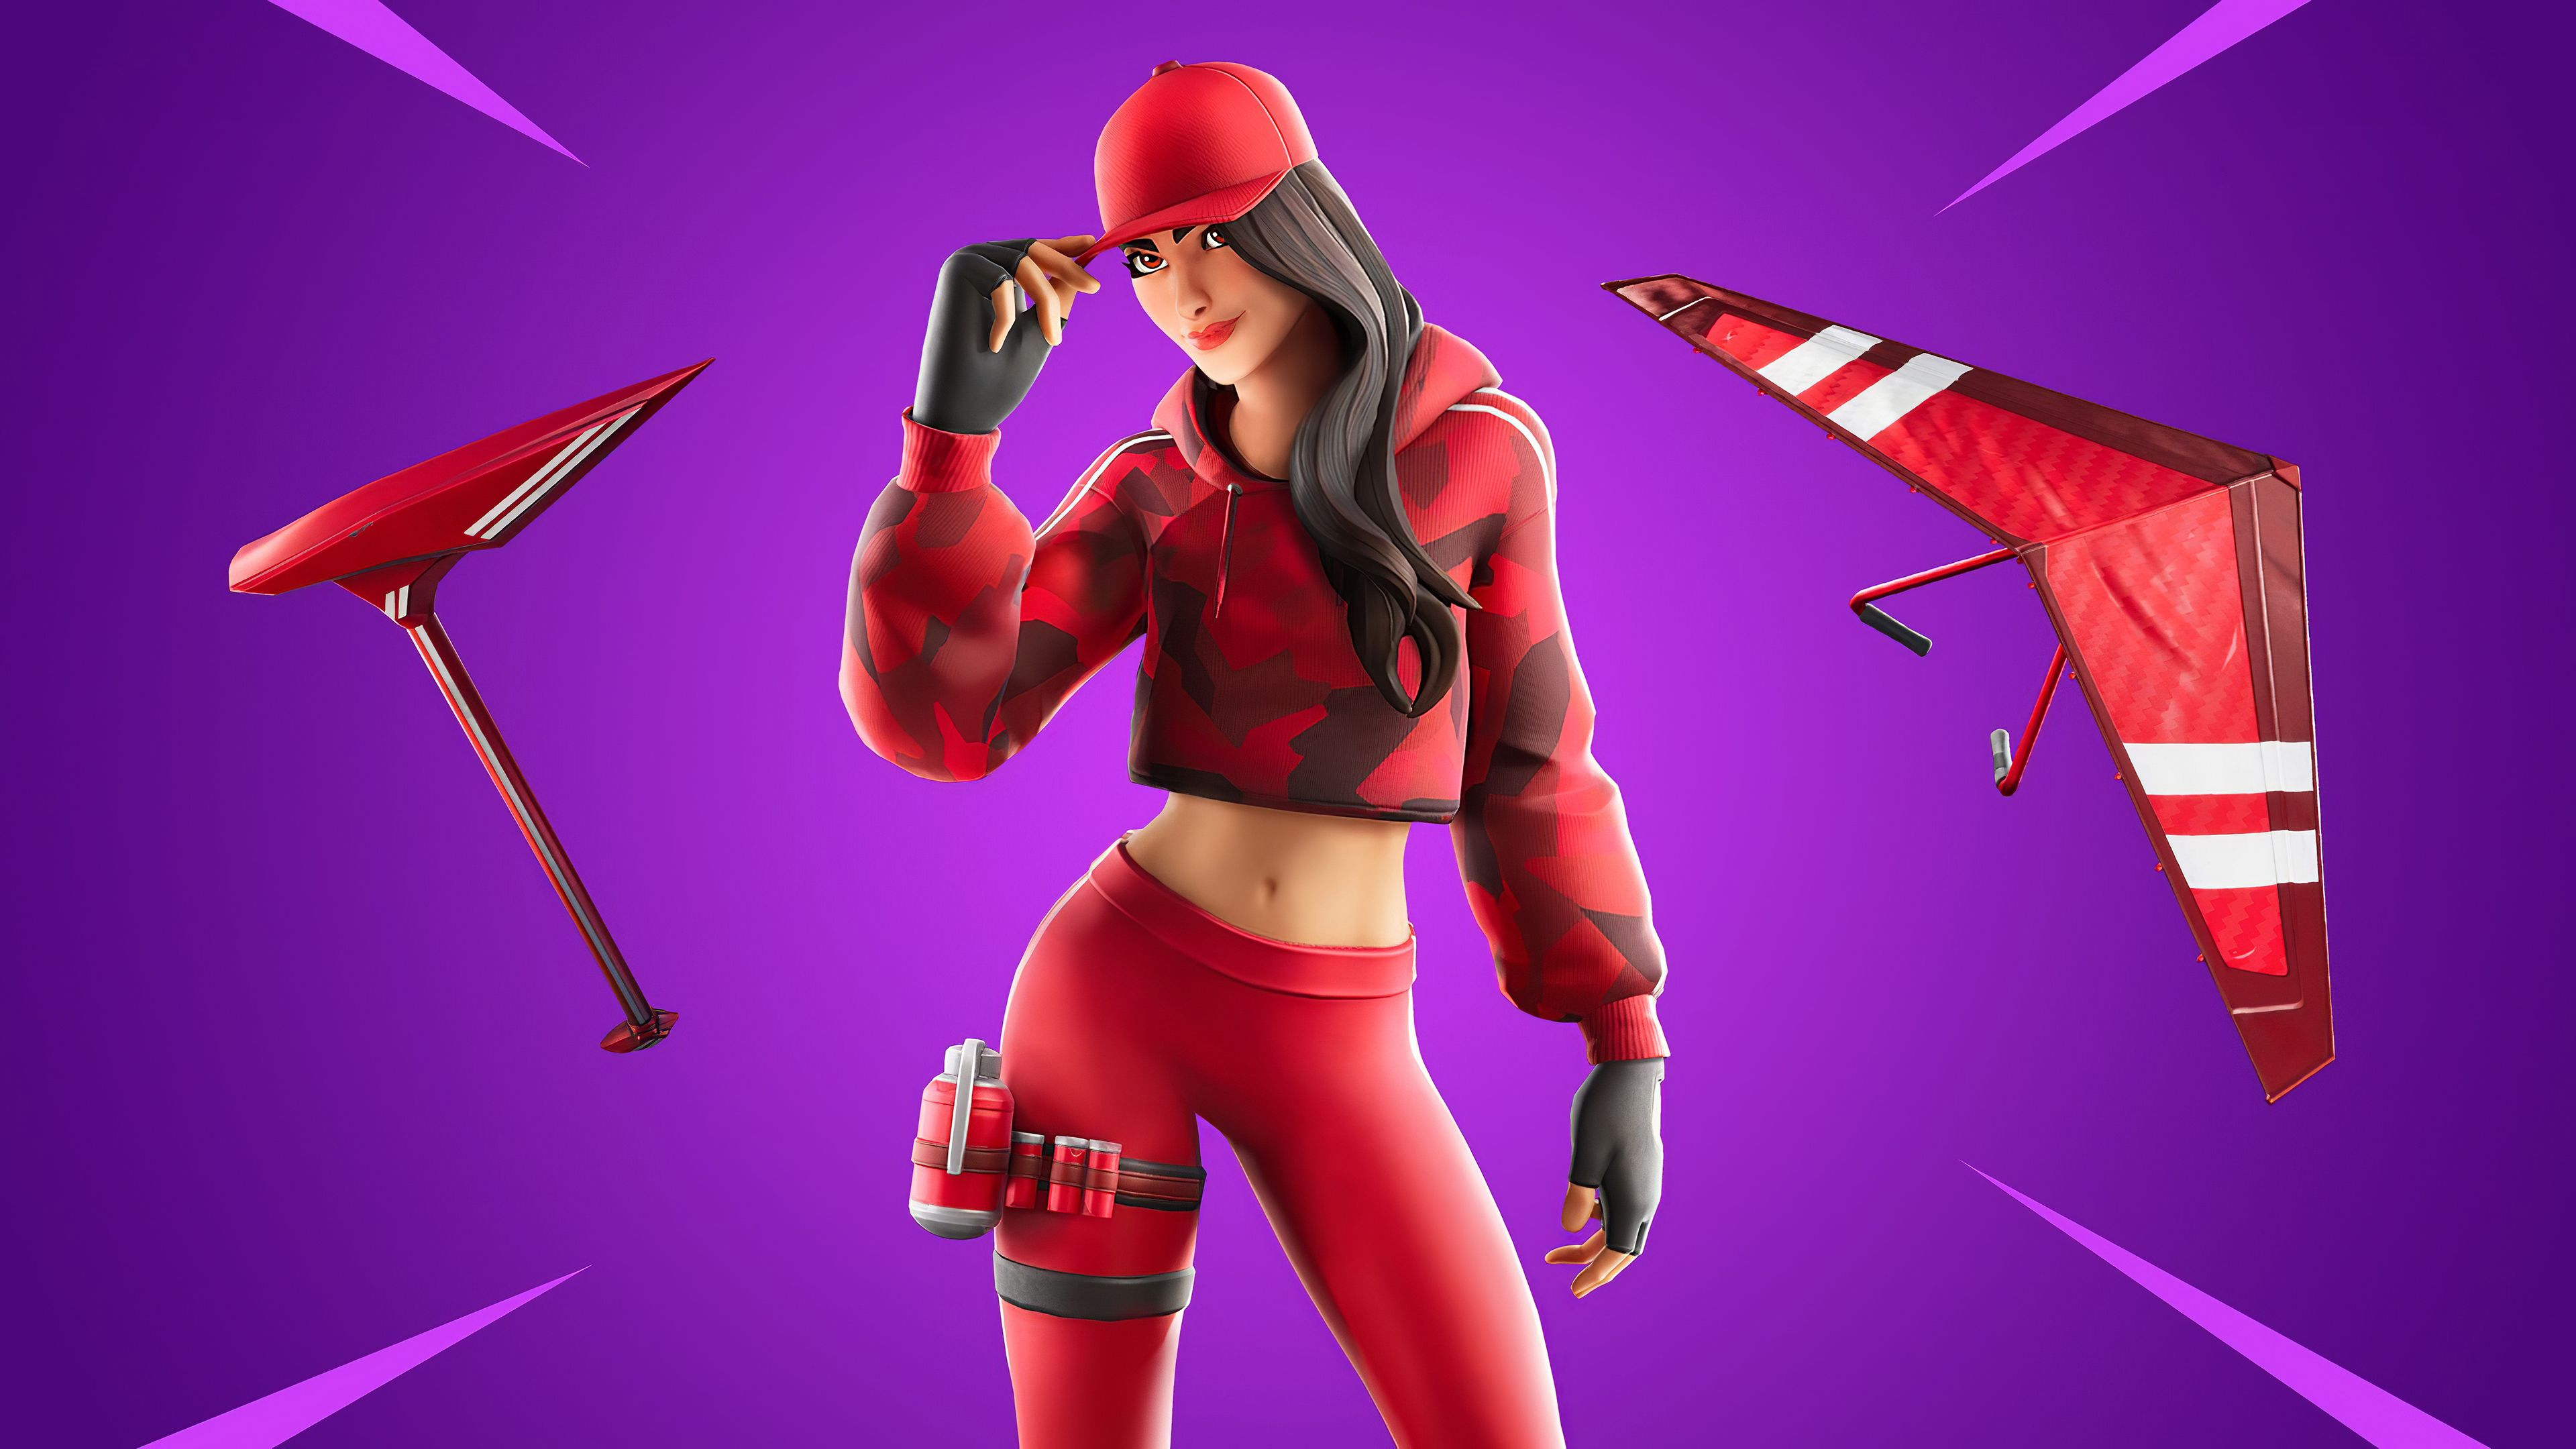 Fortnite Chapter 2 Ruby Outfit Hd Wallpapers Games Wallpapers Fortnite Wallpapers Fortnite Chapter 2 Wallpapers 4k Wall Gamer Girl Hot Fortnite Skin Images Fortnite chapter 2 wallpaper hd 4k